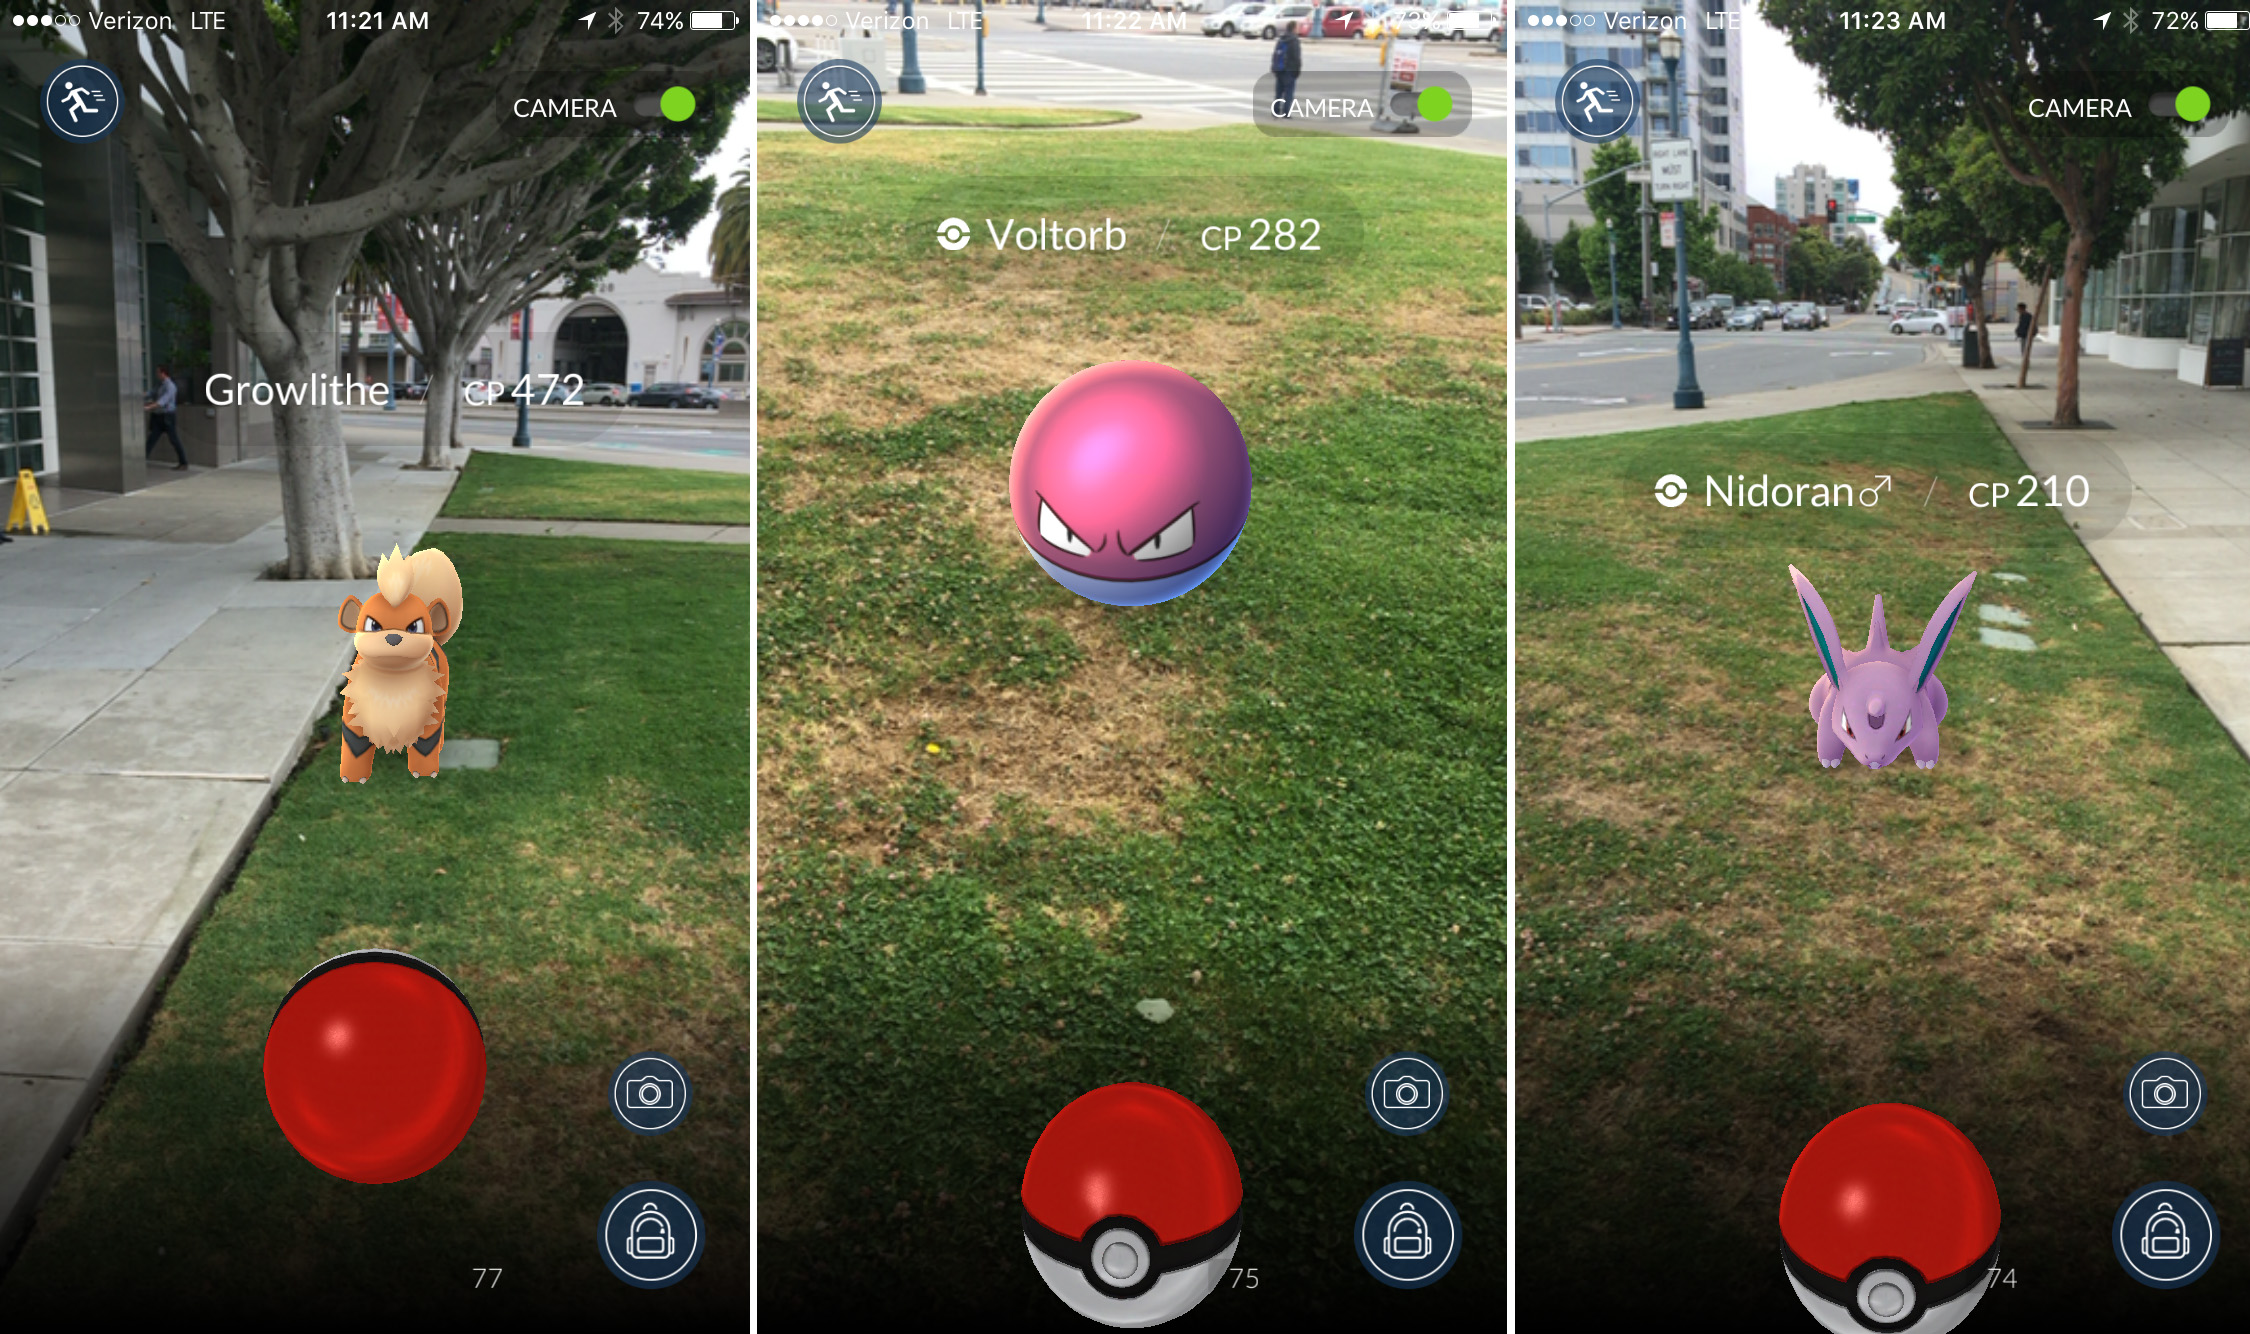 Watch The Moment A Pokemon GO Player Drives Into Cop Car pokemon go nick statt screenshots 1.0 1